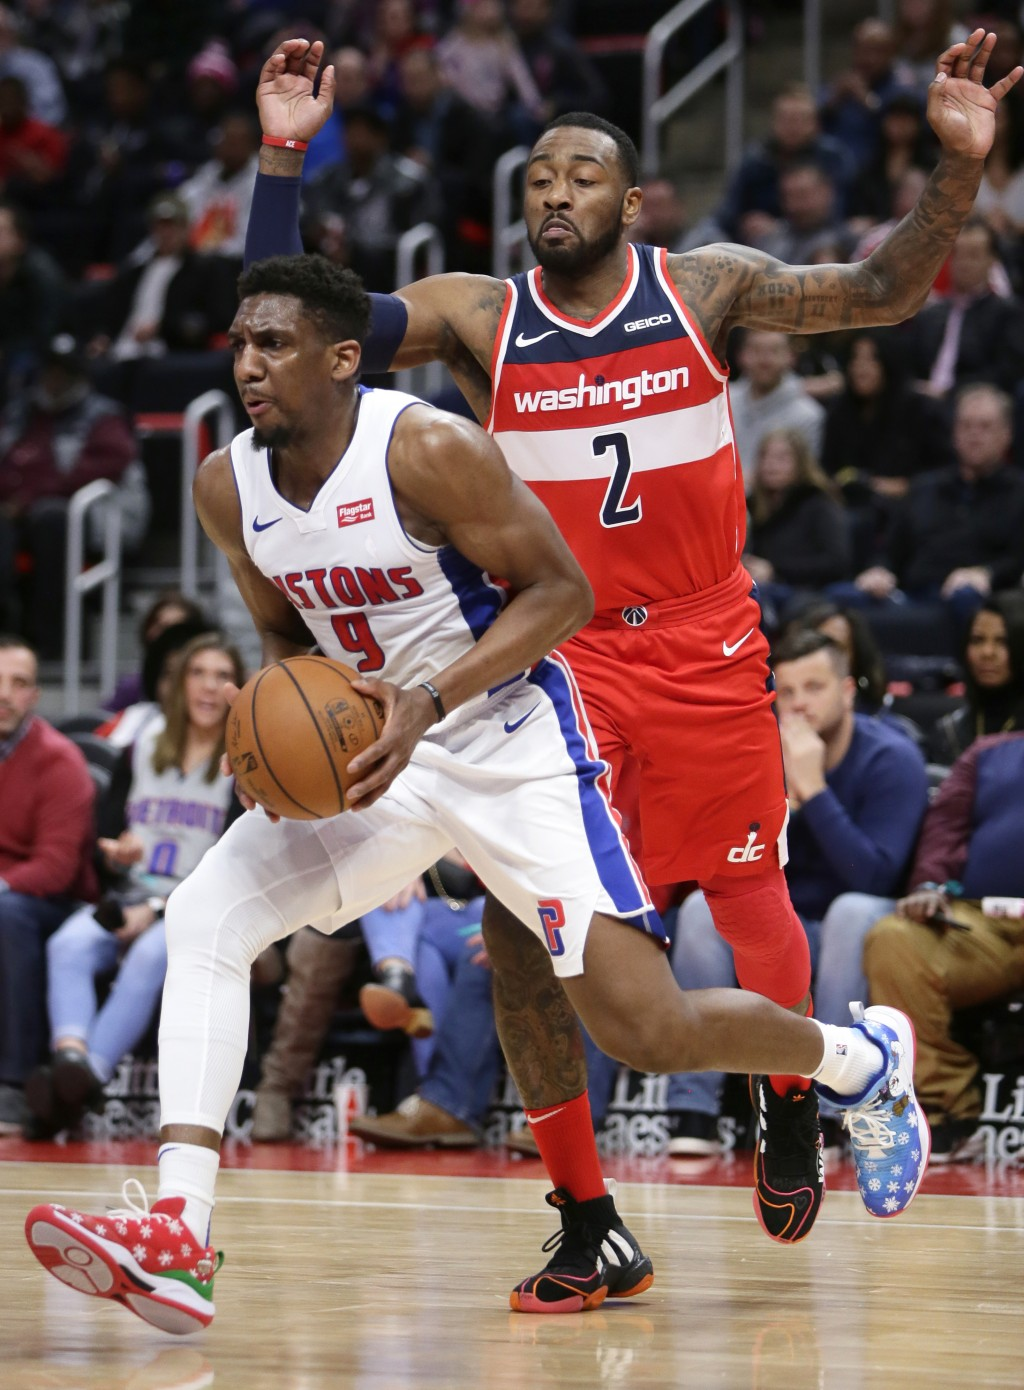 Detroit Pistons guard Langston Galloway (9) drives to the basket past Washington Wizards guard John Wall (2) during the first half of an NBA basketbal